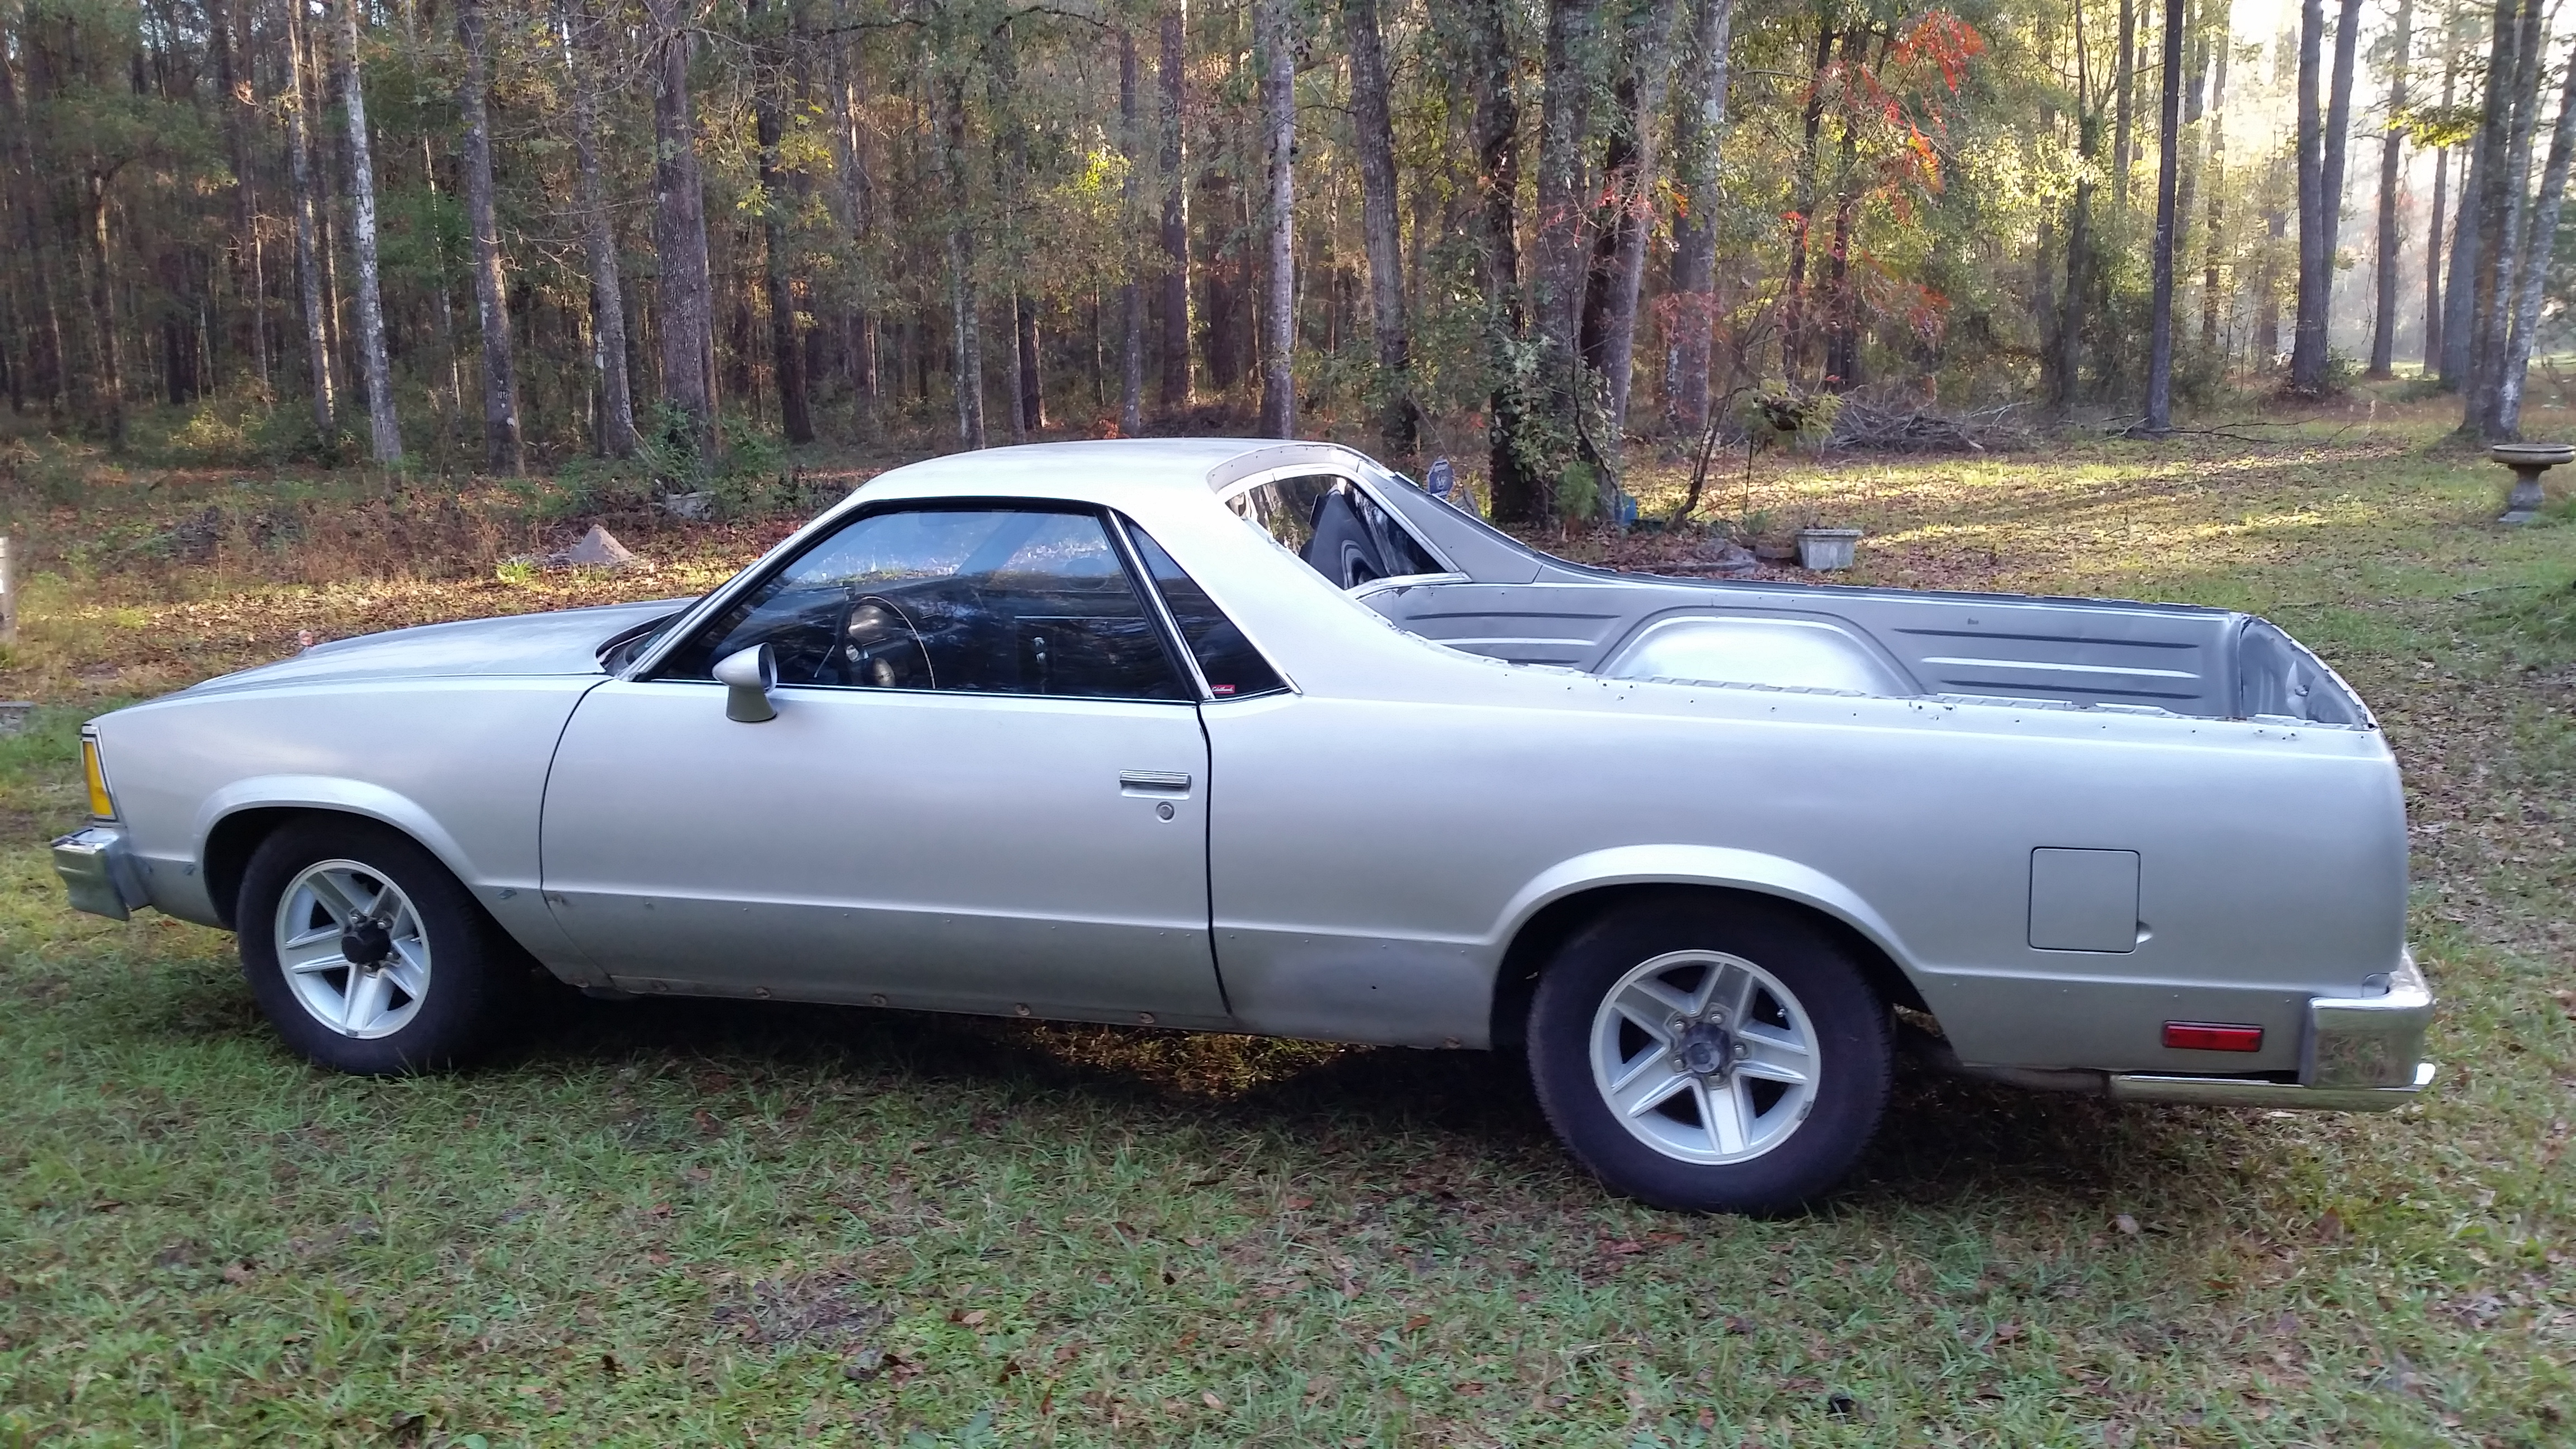 1981 Chevrolet El Camino Great American Open Road